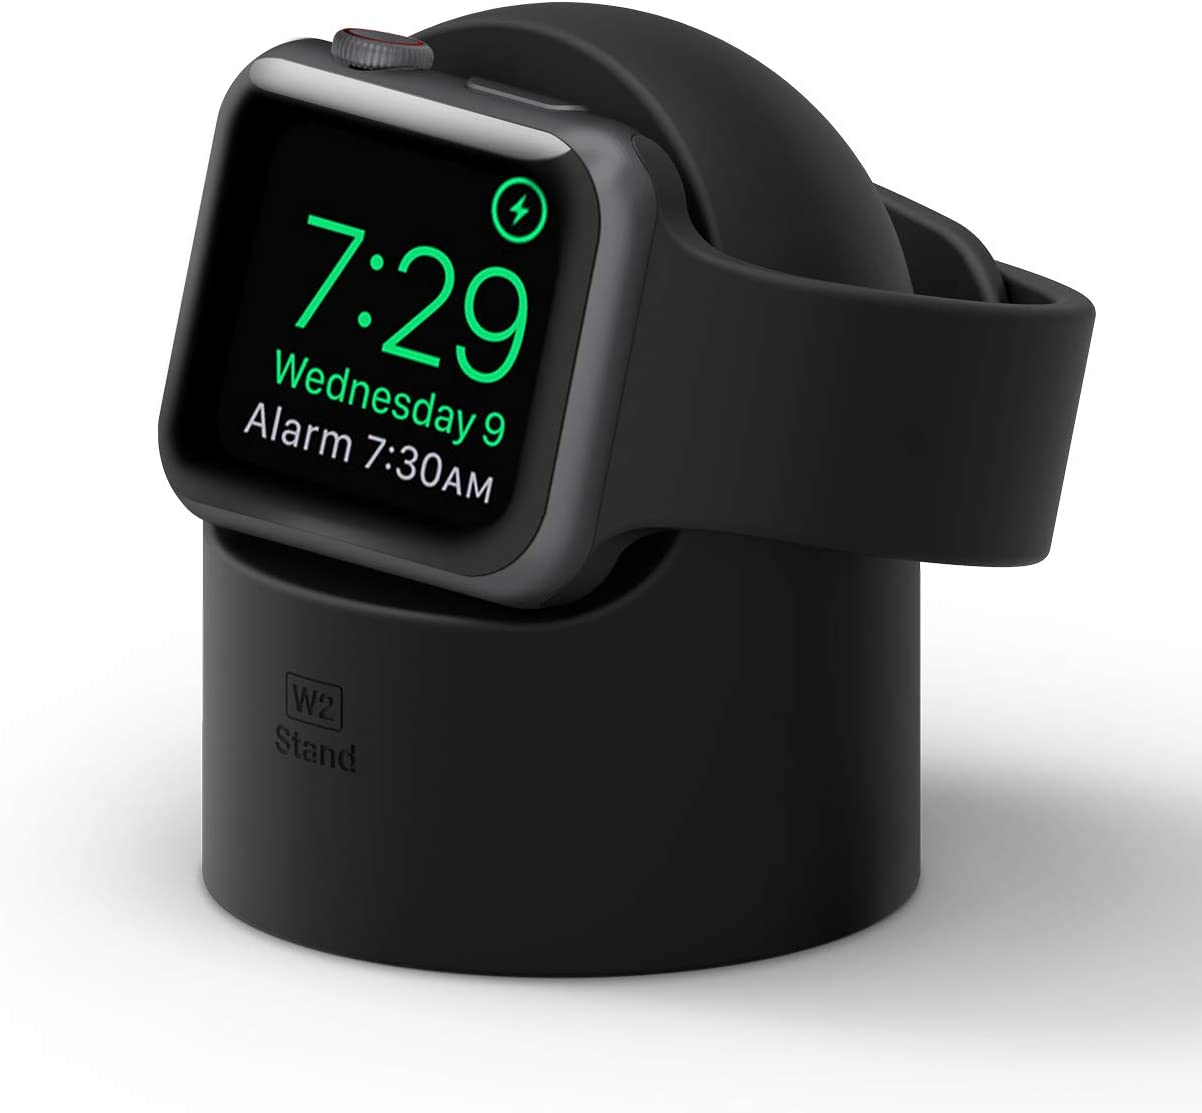 elago W2 Apple Watch Charger Stand Compatible with Apple Watch Series 6/SE/5/4/3/2/1 (44mm, 42mm, 40mm, 38mm) (Black)